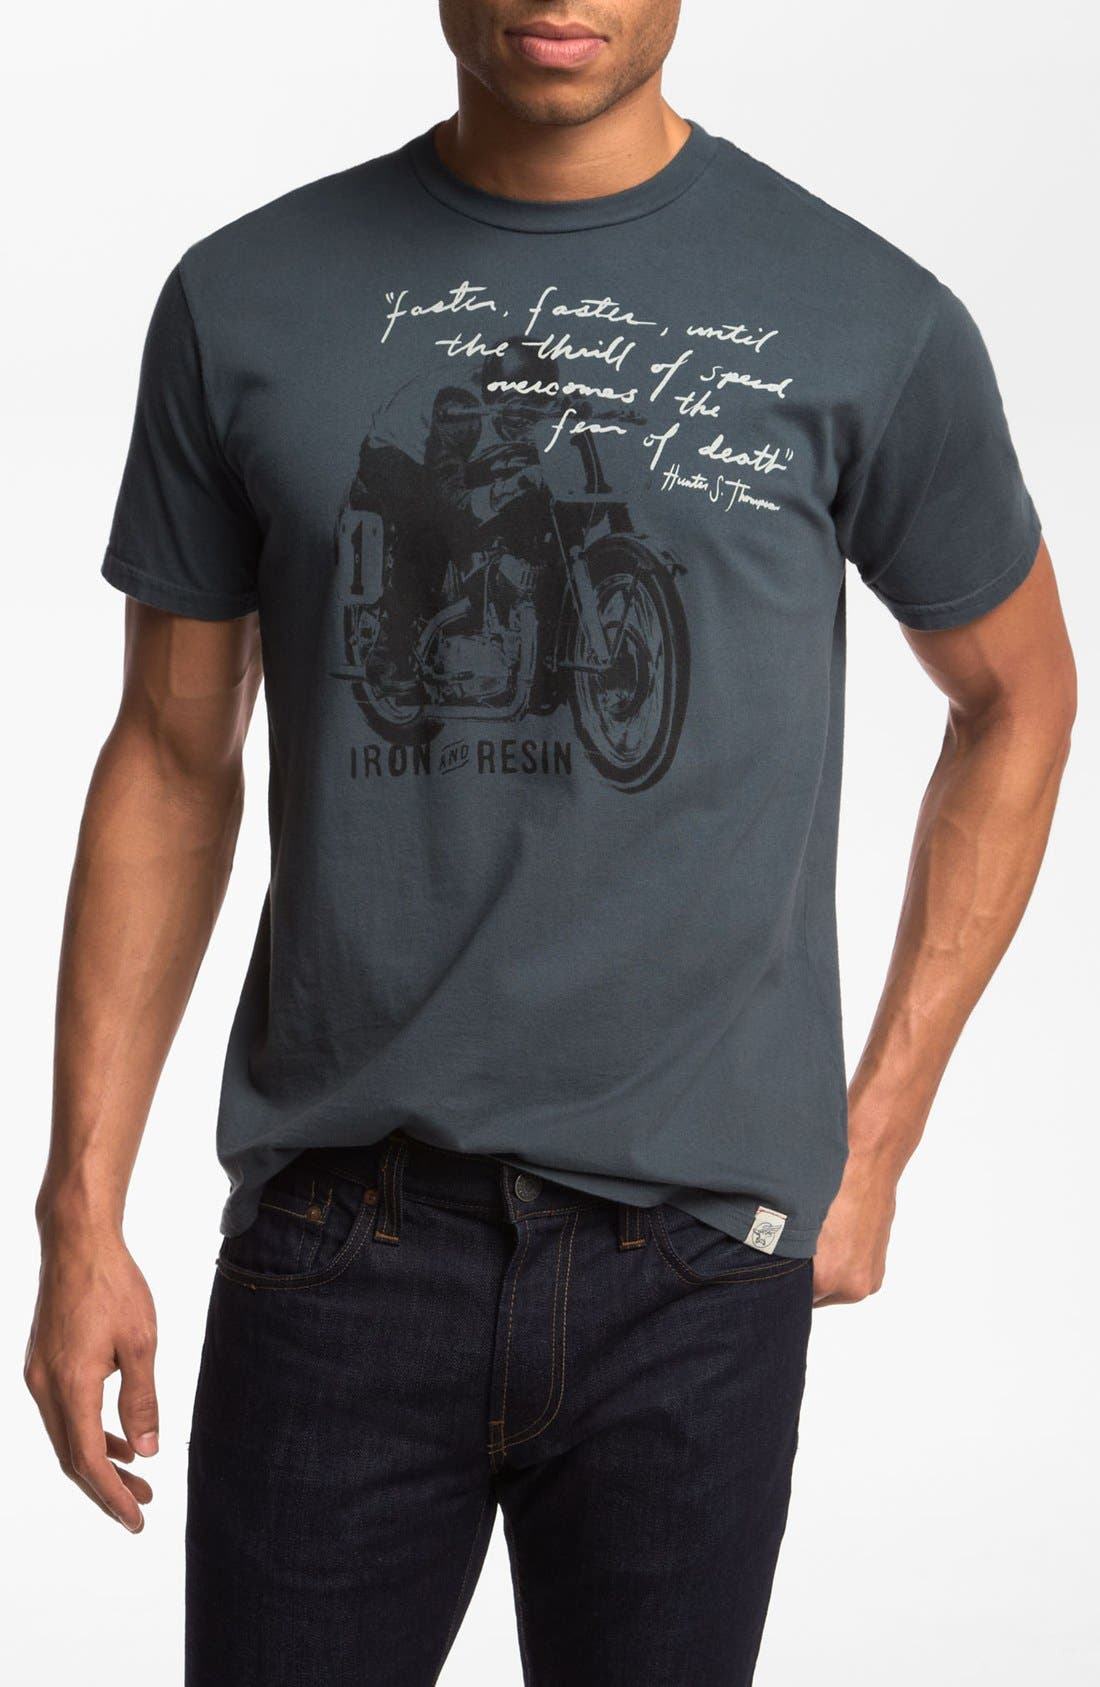 Alternate Image 1 Selected - Iron & Resin 'Faster, Faster' T-Shirt